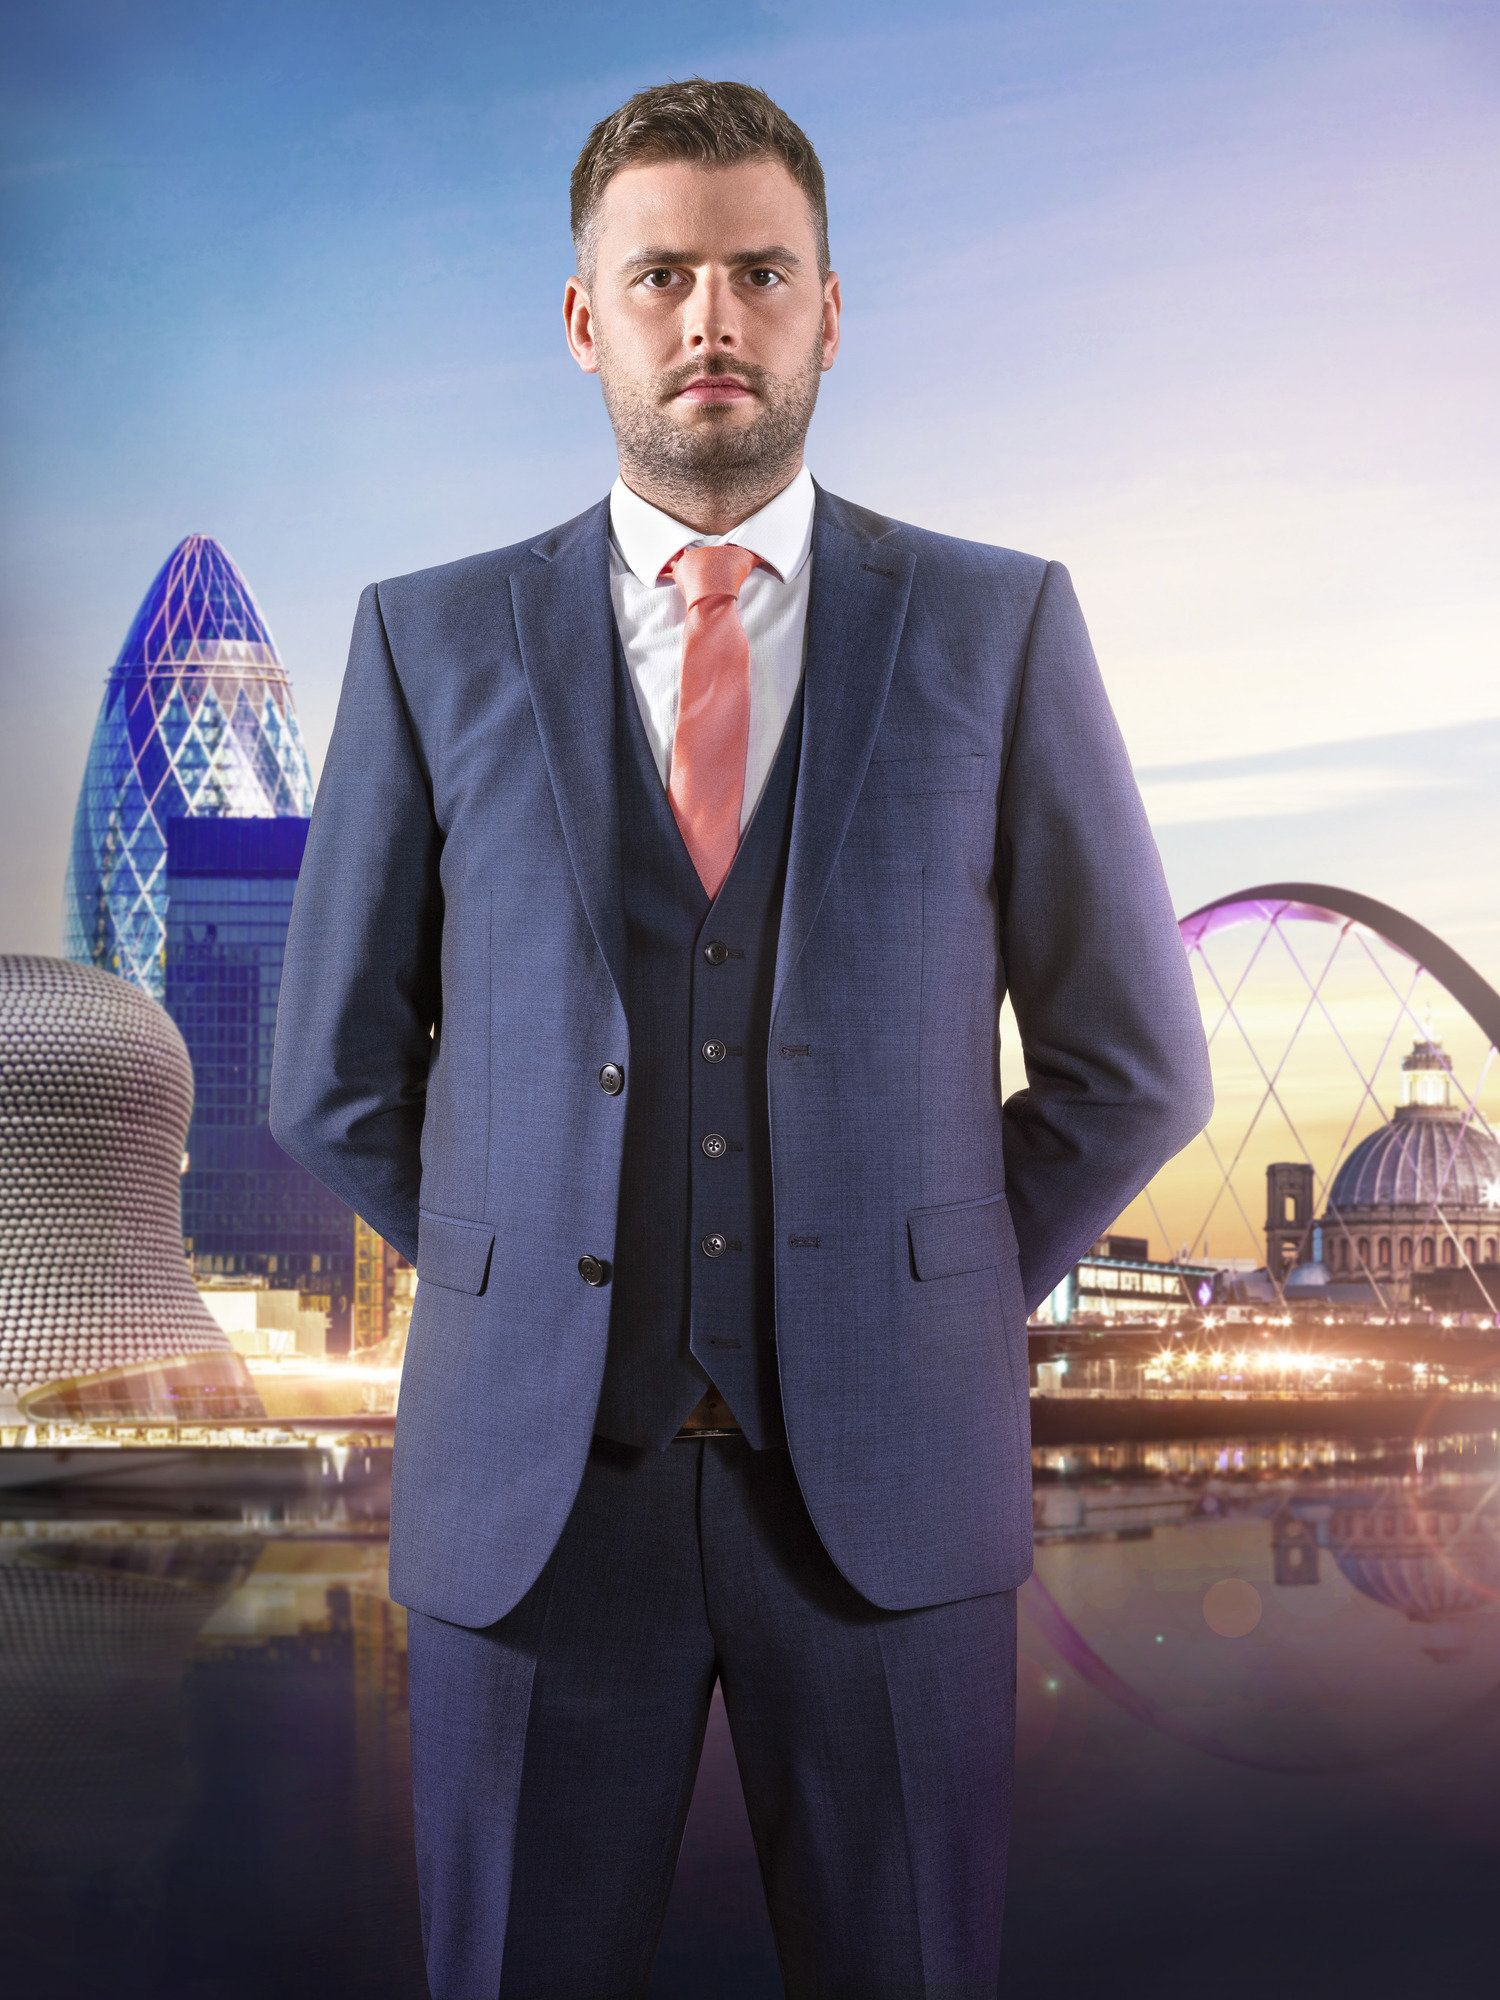 Rick Monk made some sexist comments during The Apprentice's first